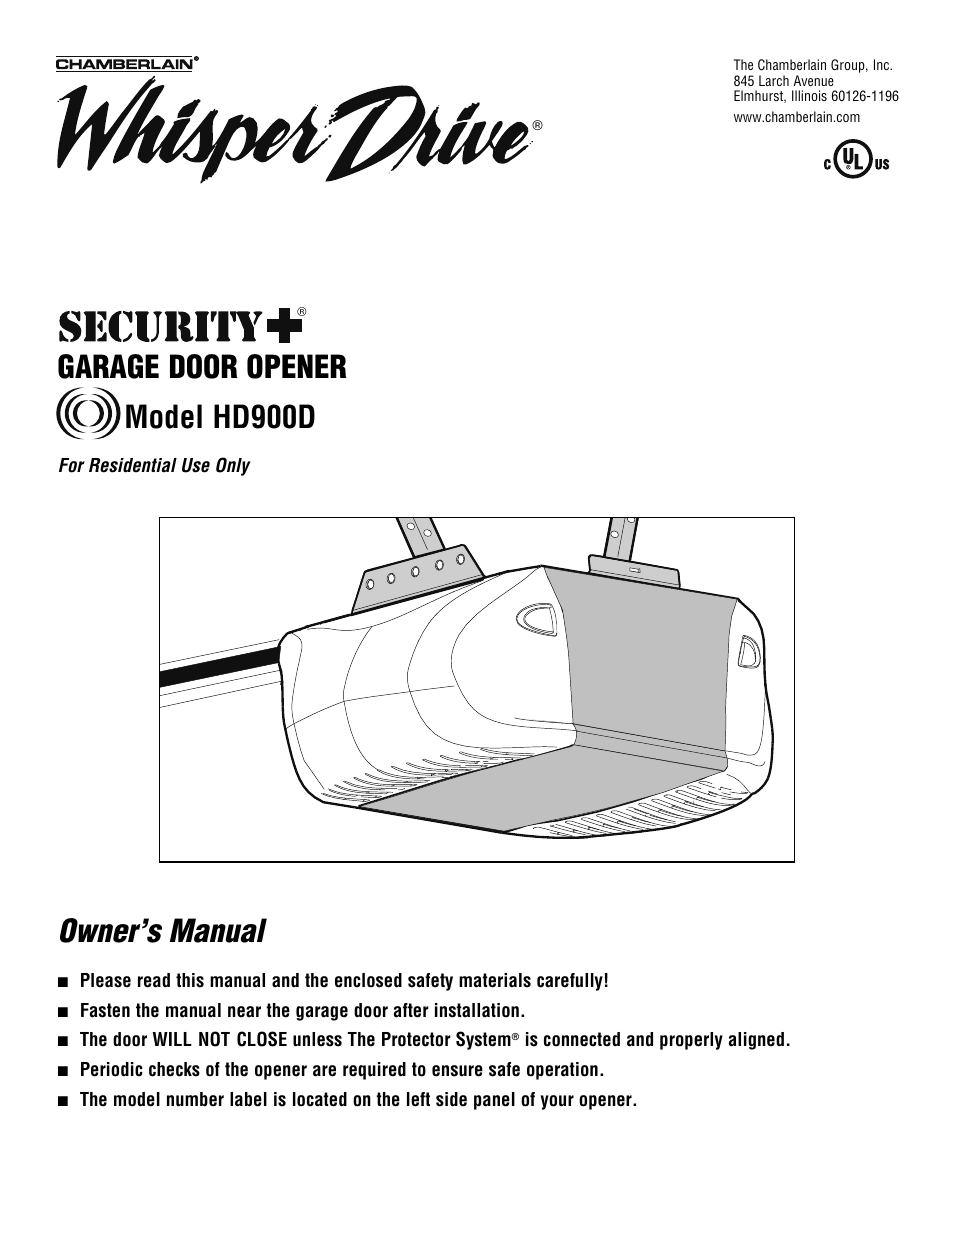 Chamberlain Whisper Drive Hd900d User Manual 88 Pages Garage Door Opener Schematic